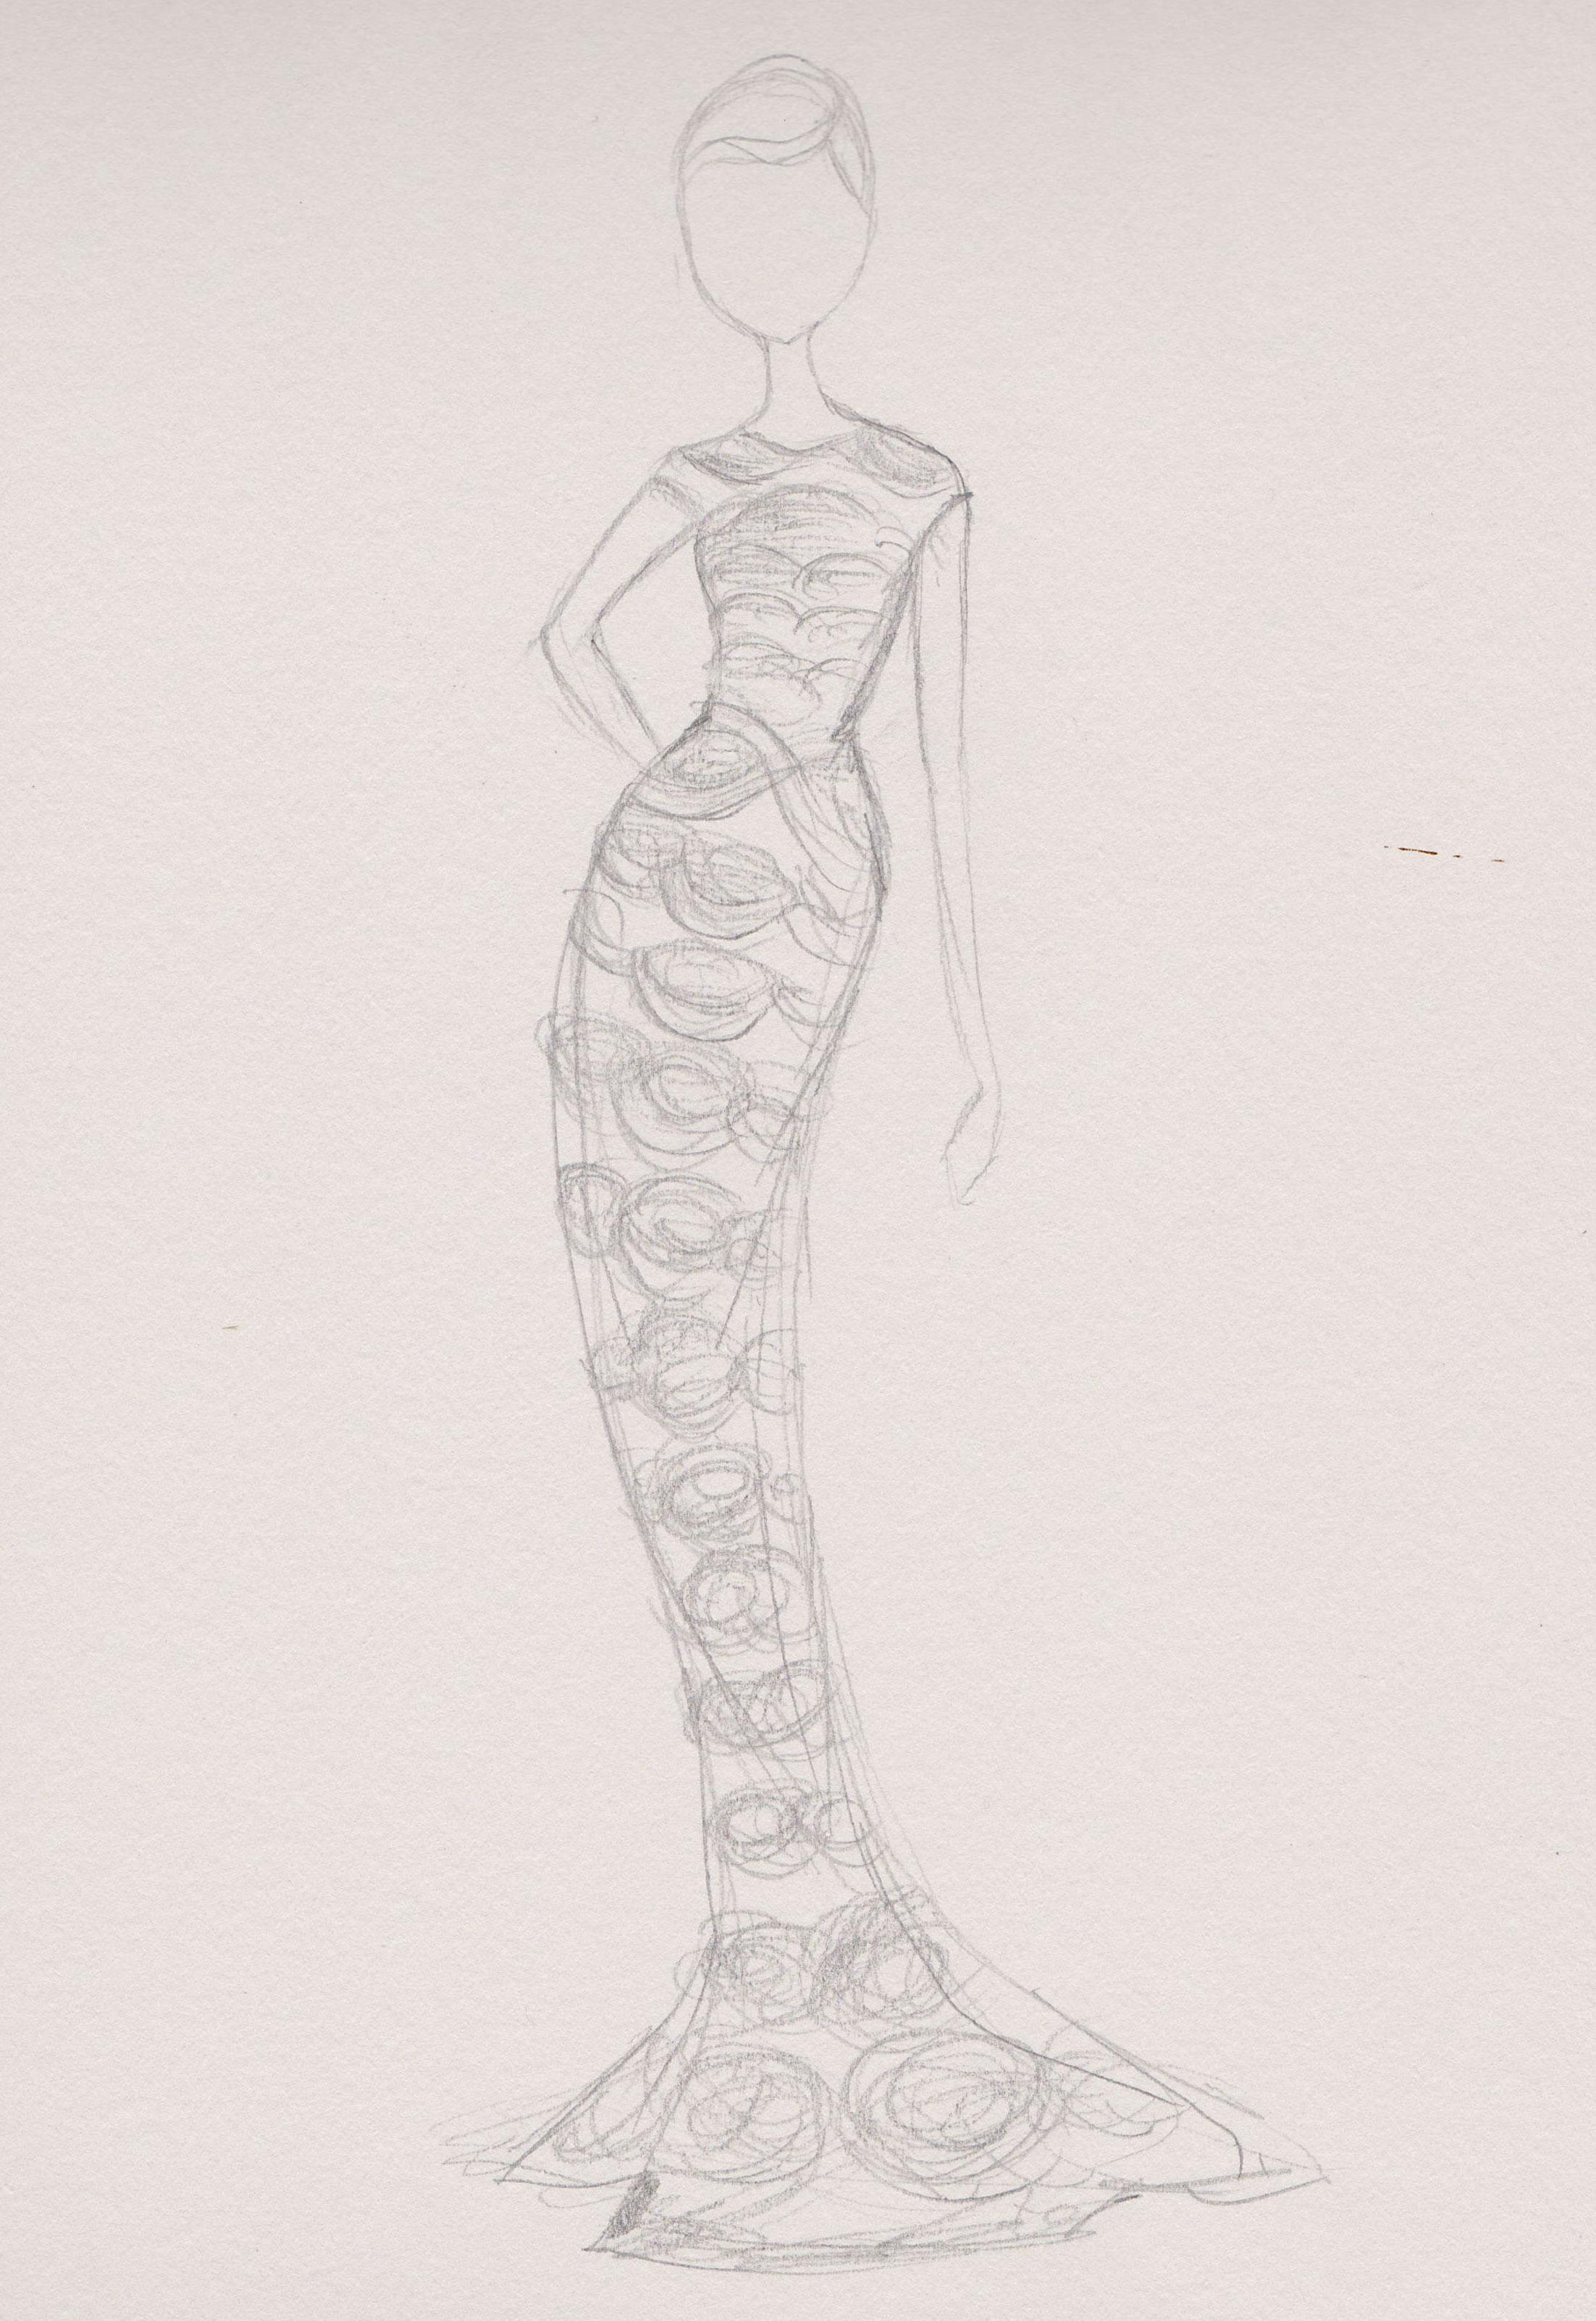 SKETCHES - Ethereal - image 1 - student project